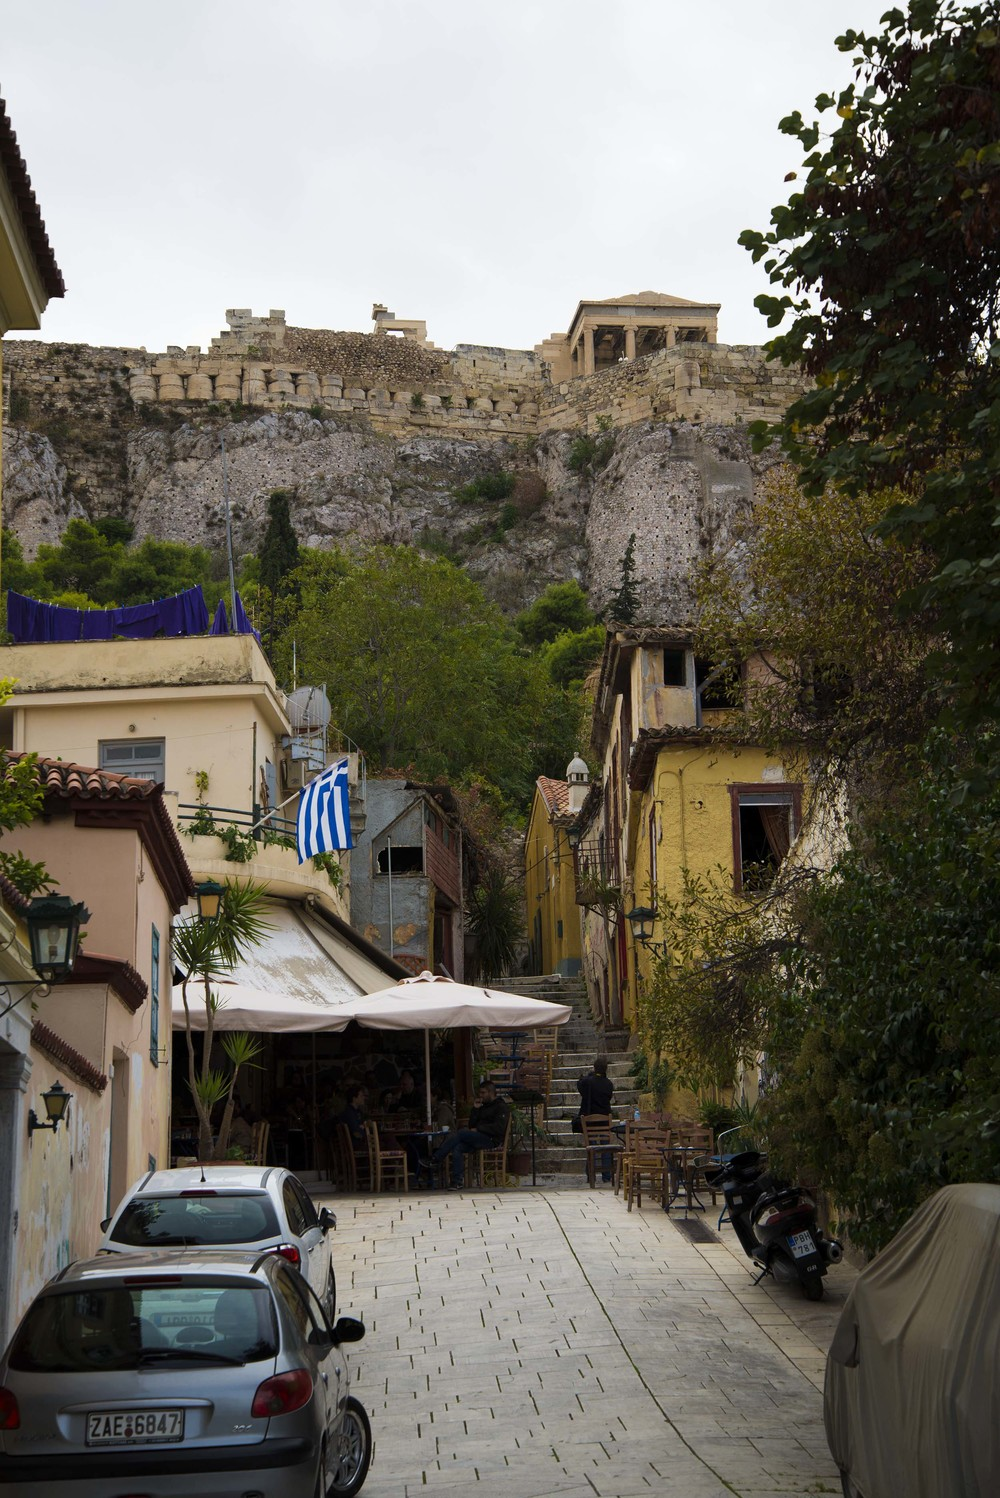 View of the Acropolis from Klepsidras, 2014, Athens